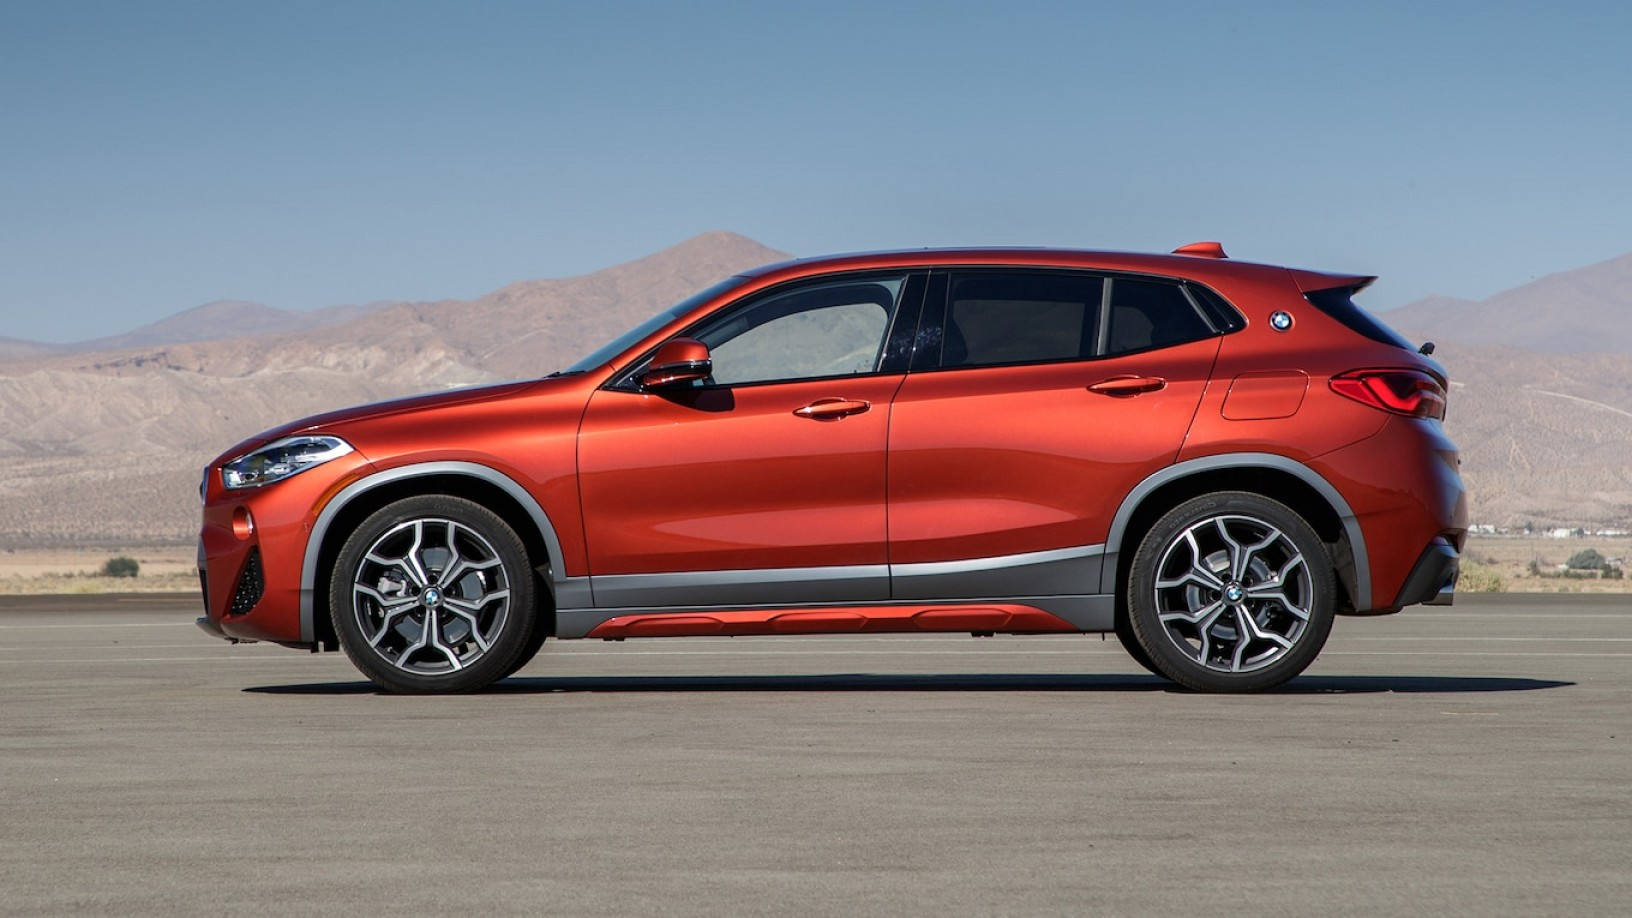 SUV Car Elevation Vector: Motor Trend Suv Of The Year Introduction